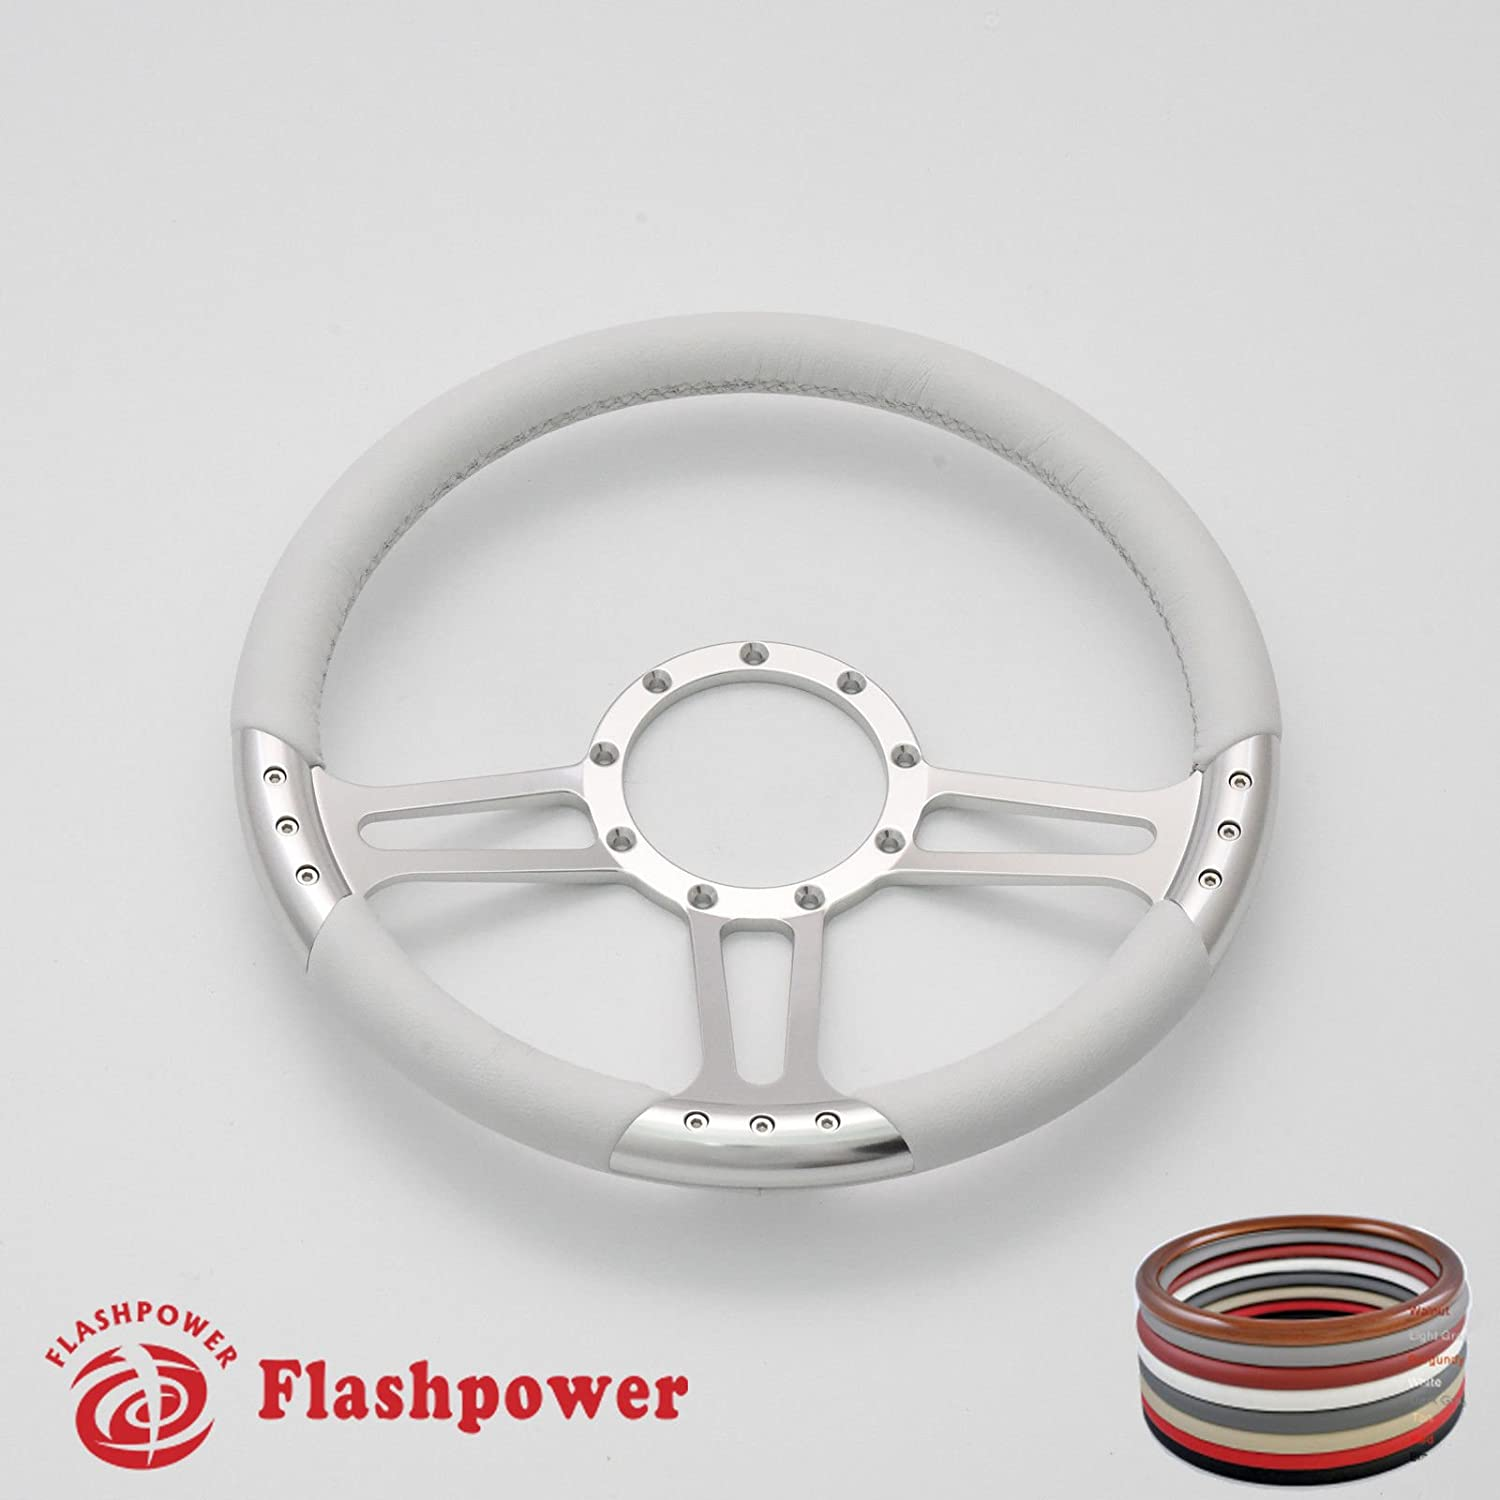 White Flashpower 14 Trinity Billet Full Wrap 9 Bolts Steering Wheel with 2 Dish and Horn Button